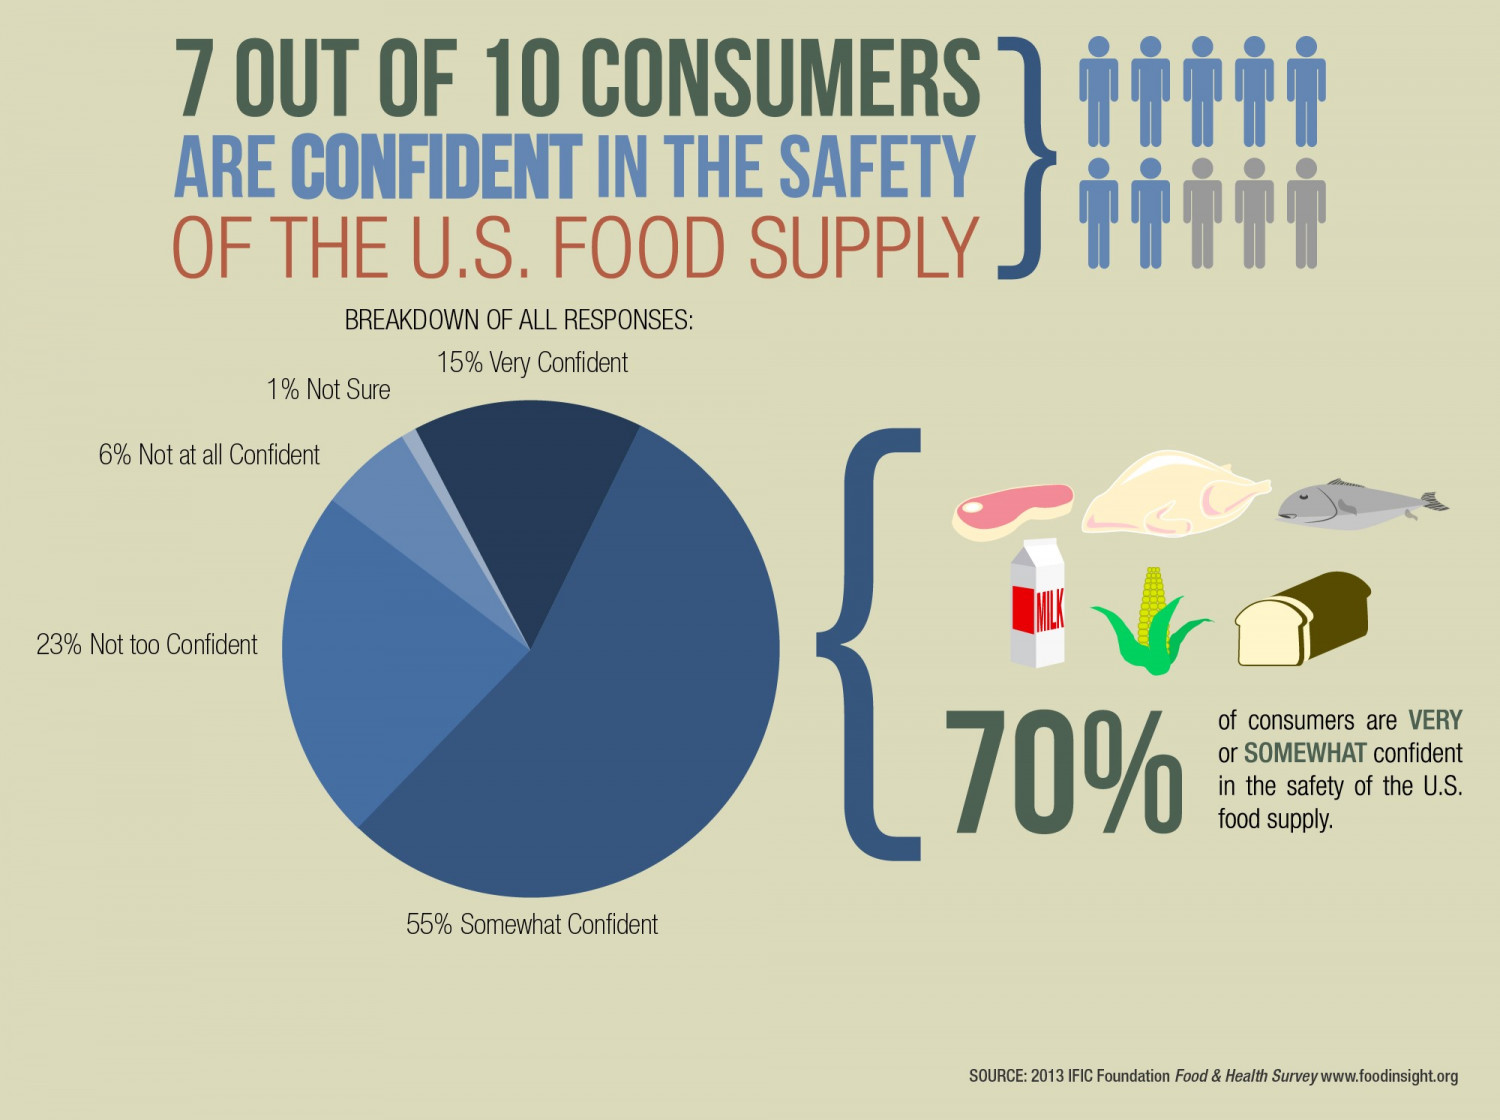 Comsumer Confidence in the Safery of the U.S. Food Supply Infographic